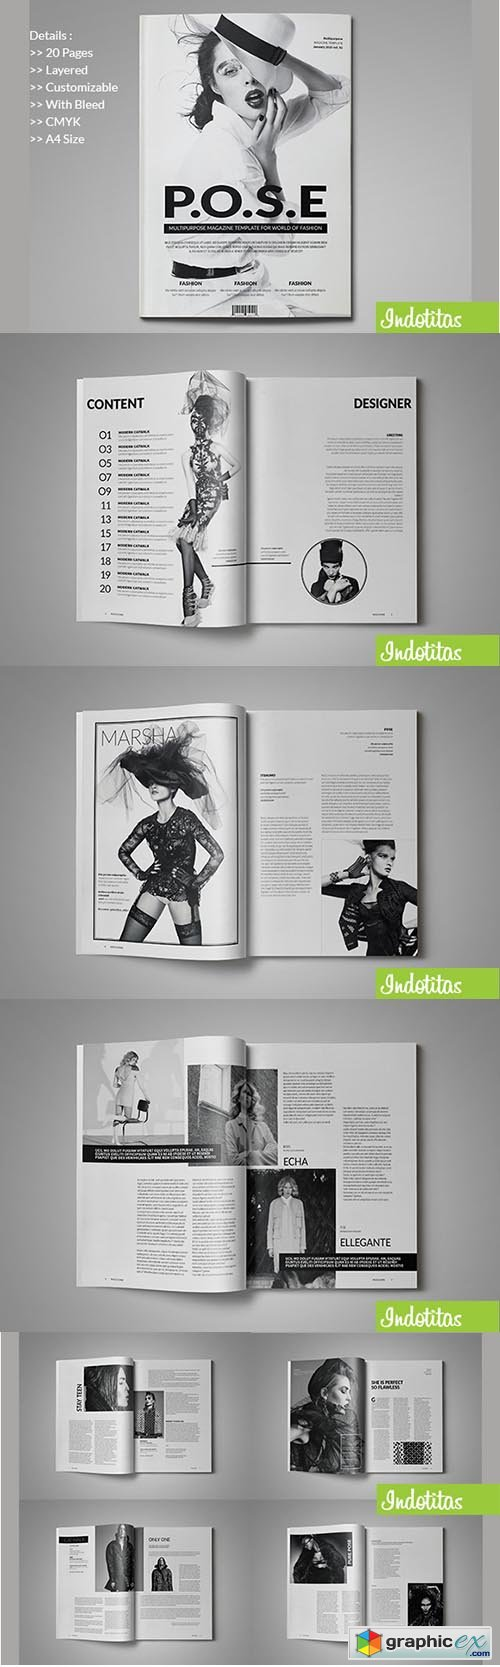 indesign magazine template » free download vector stock image, Powerpoint templates